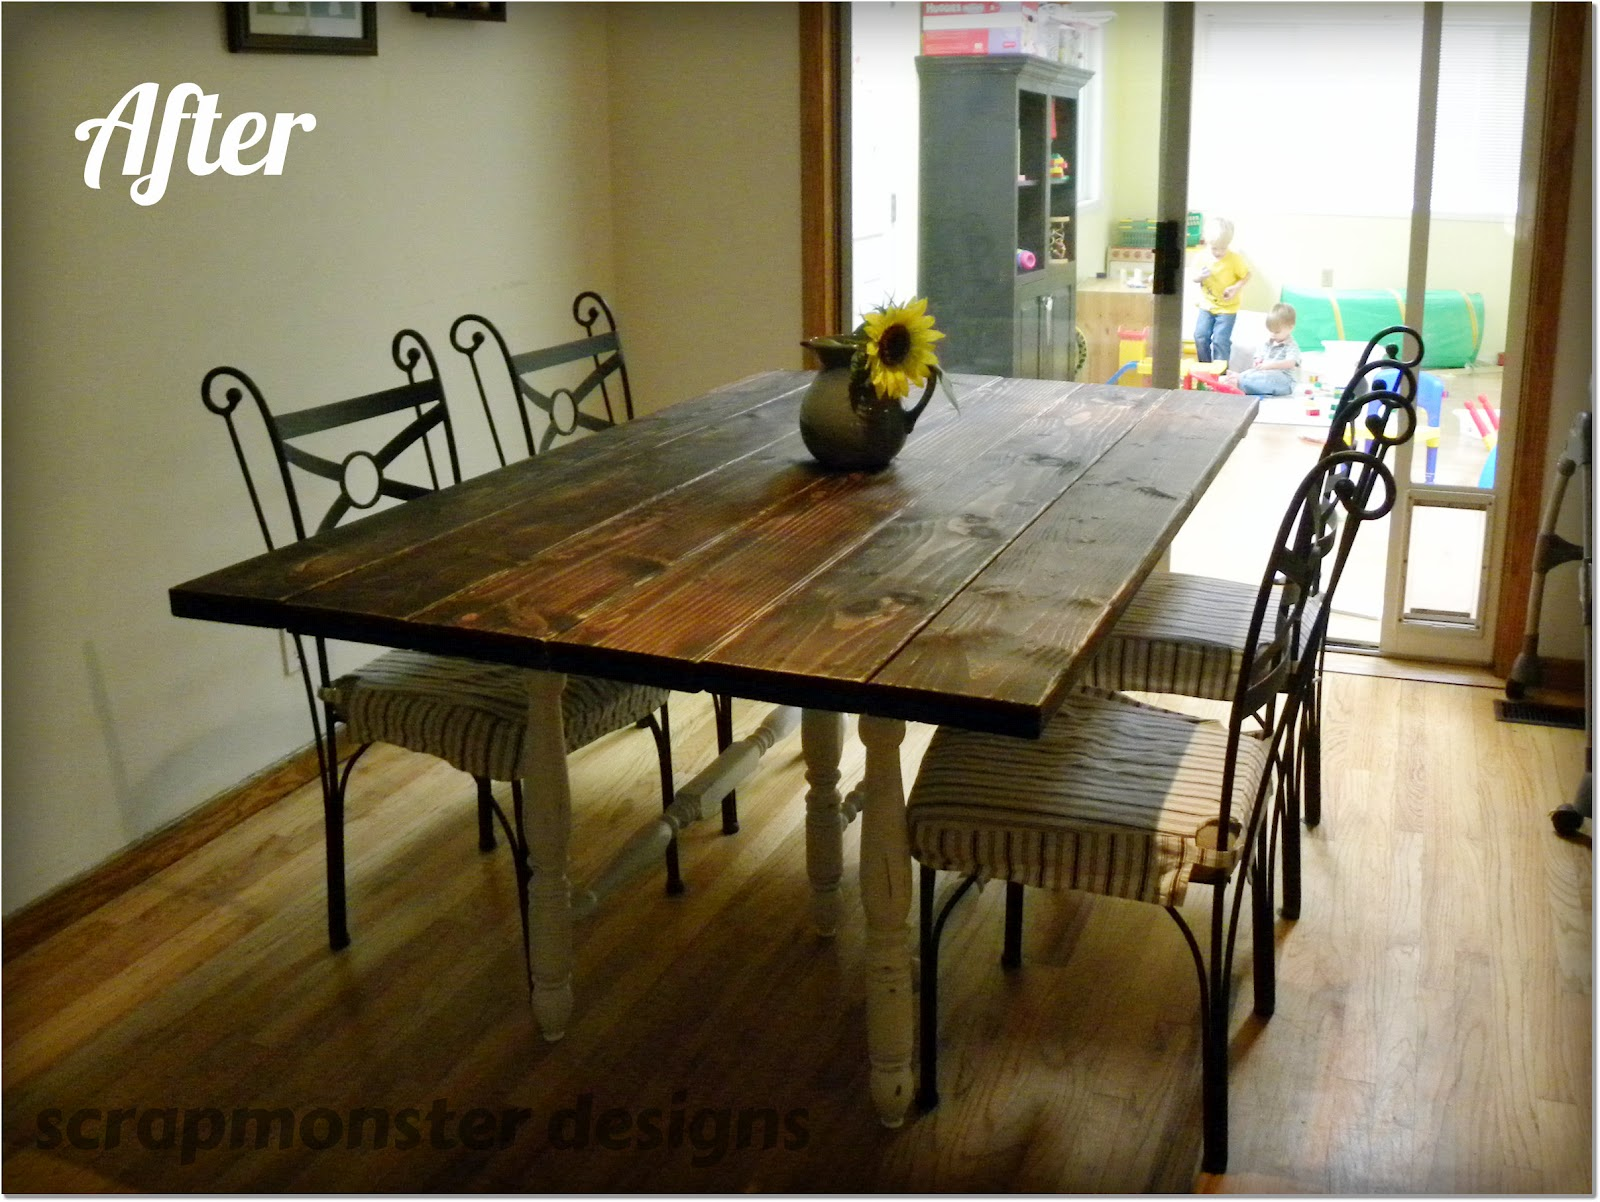 scrapmonster: Rustic Dining Table Make-Over